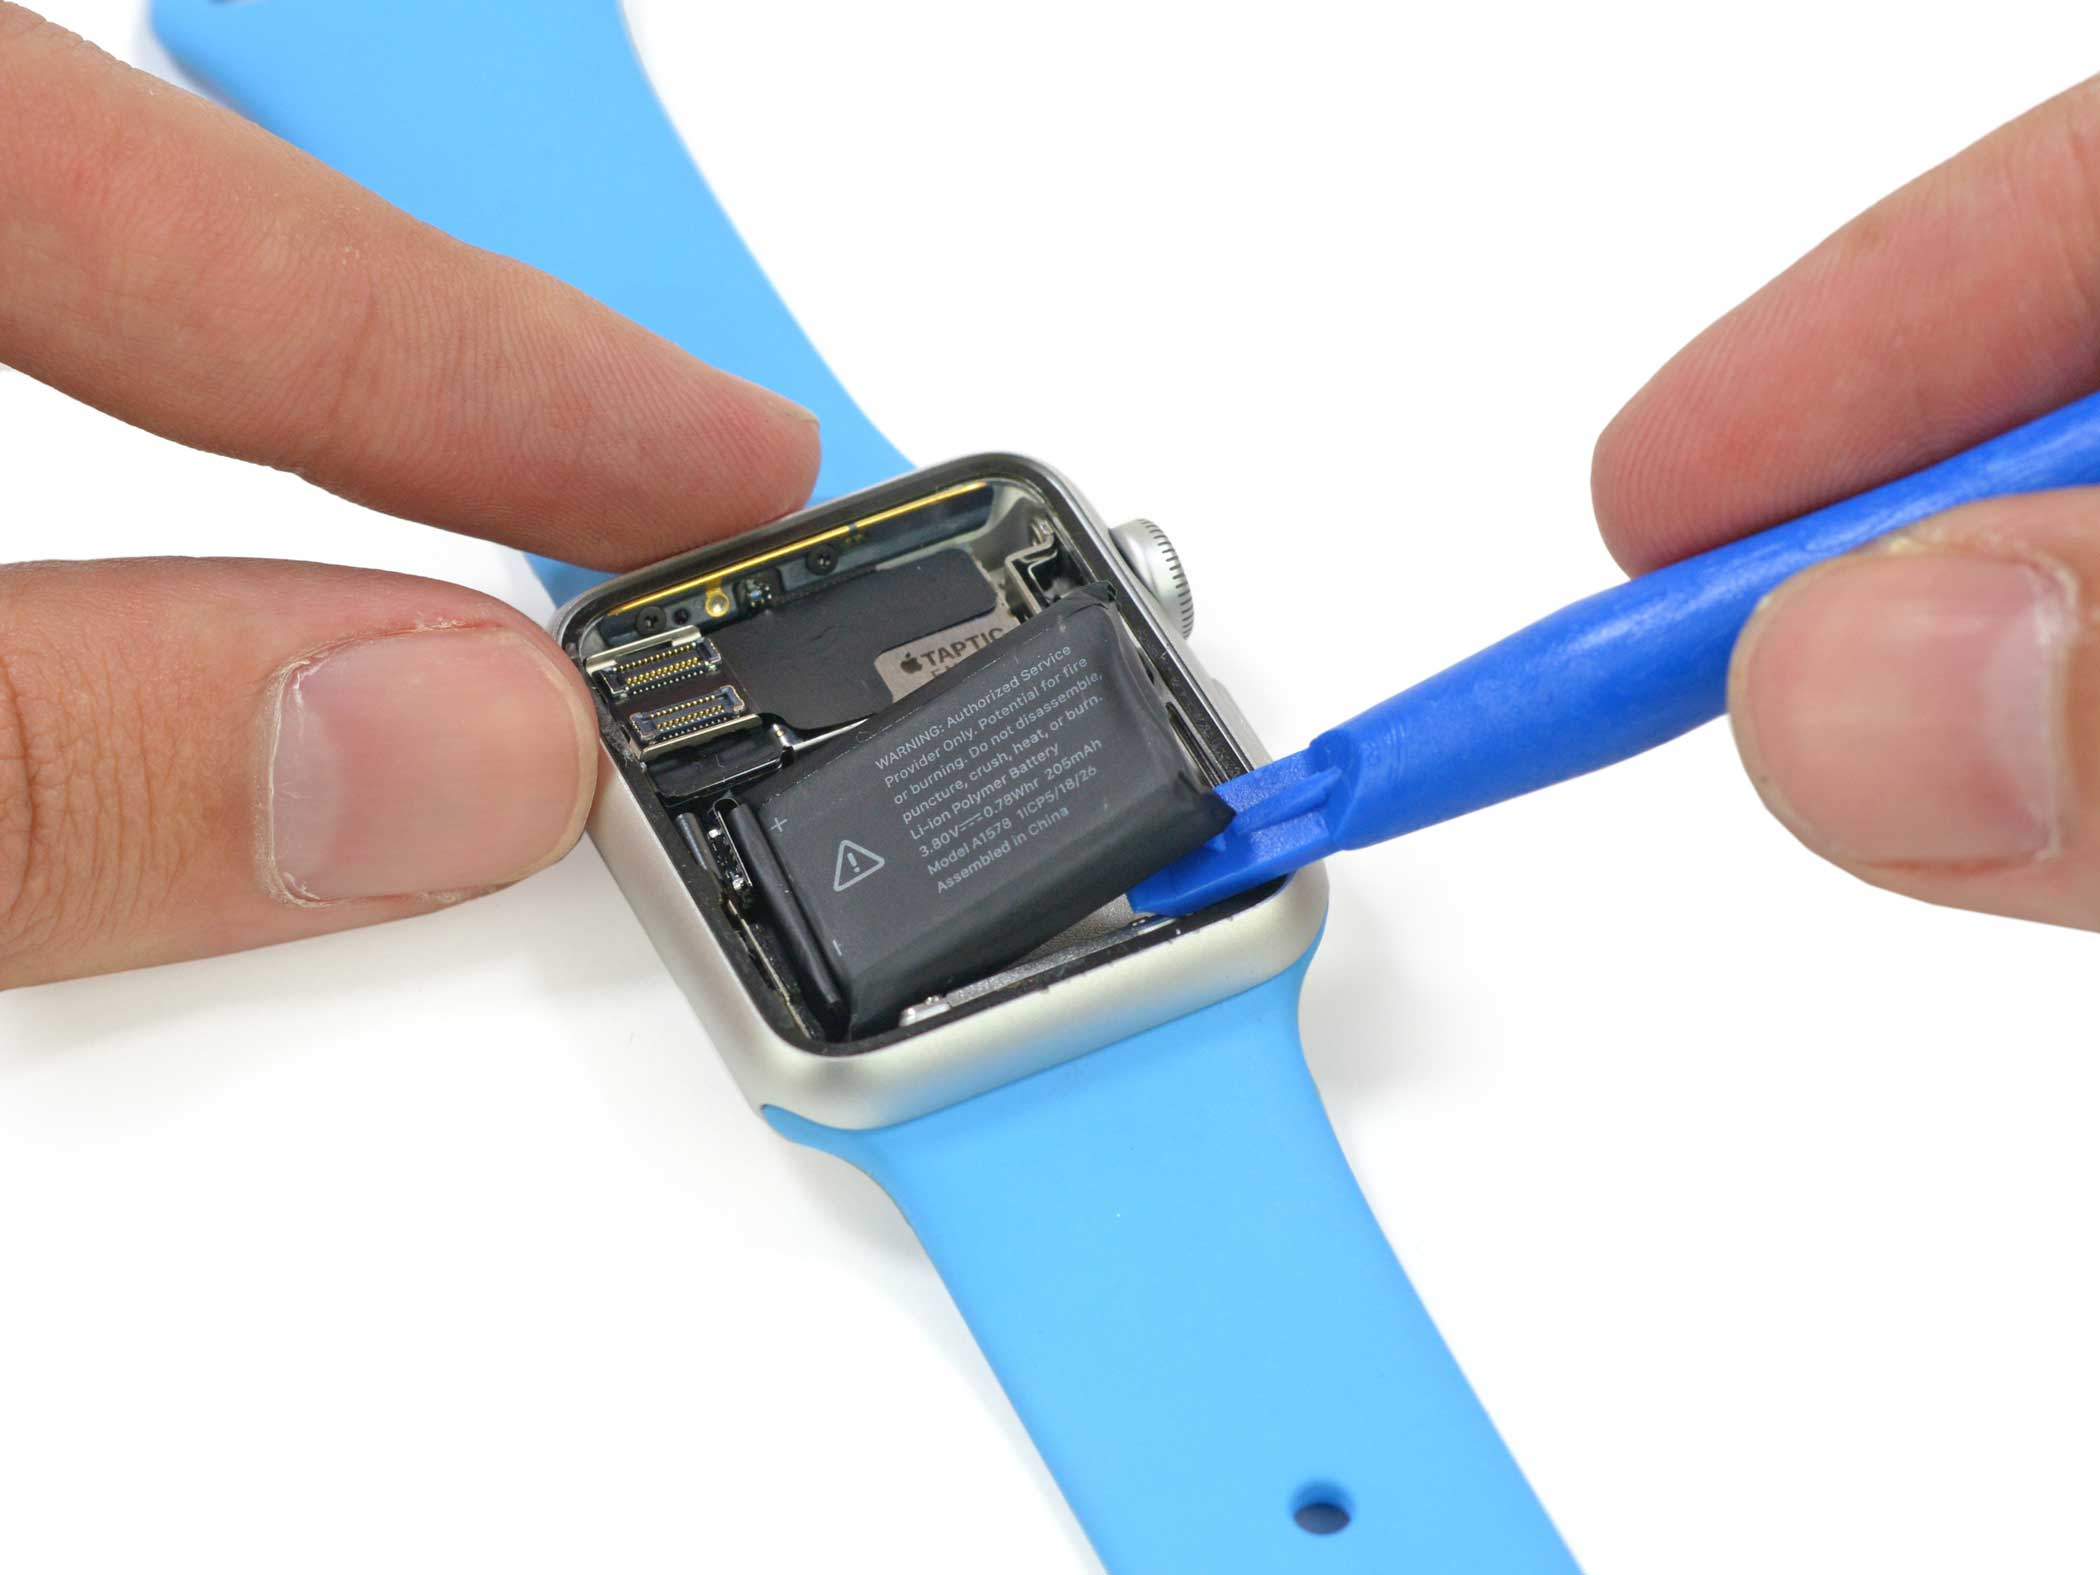 A plastic tool is used to remove the device's battery. The Apple Watch sports a 3.8 V, 0.78 Wh lithium-ion battery, which has a life of about 18 hours for general use before needing a recharge